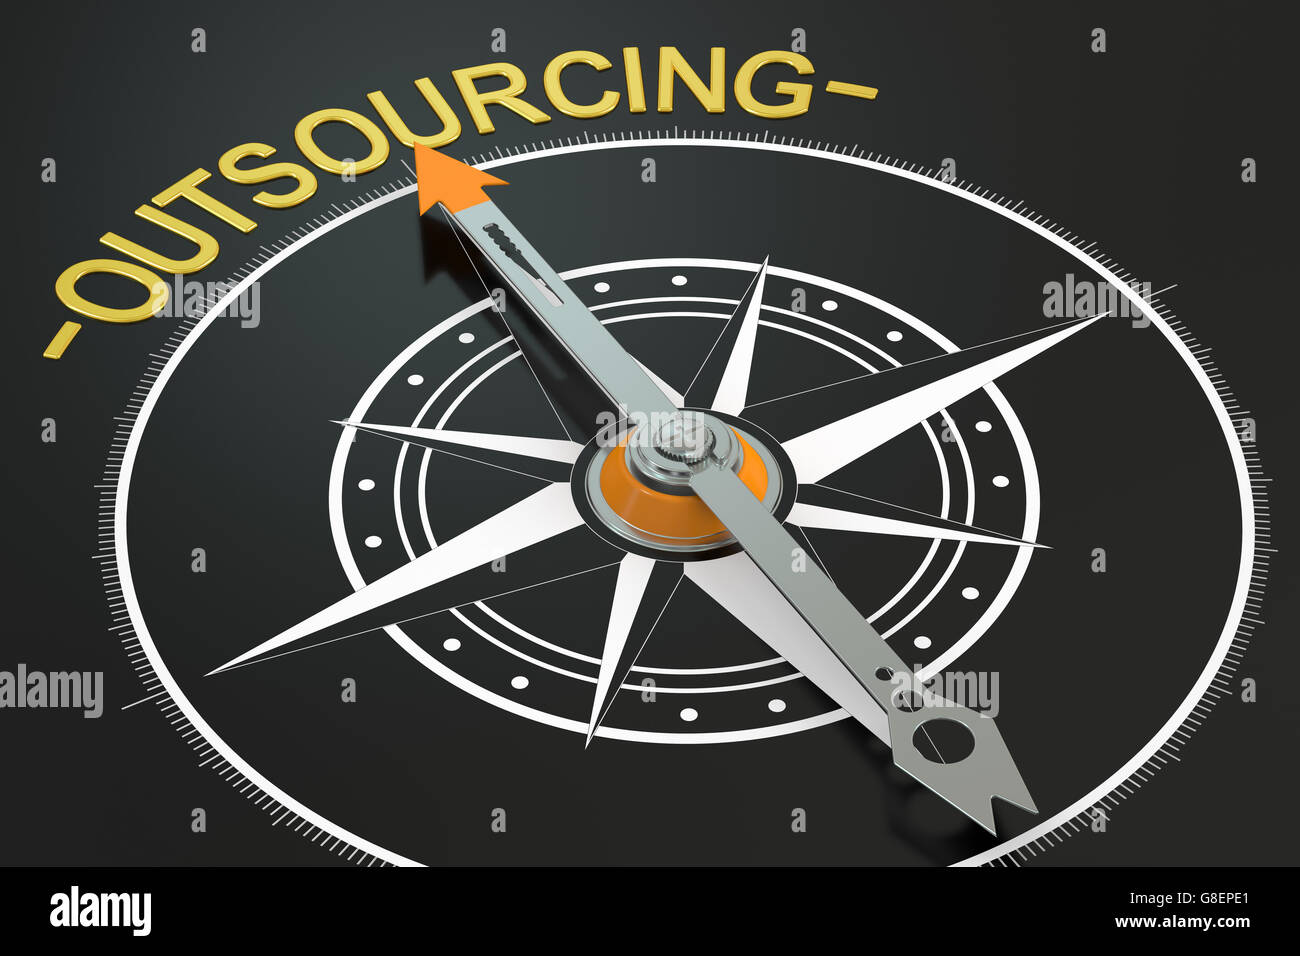 Outsourcing compass concept, 3D rendering - Stock Image